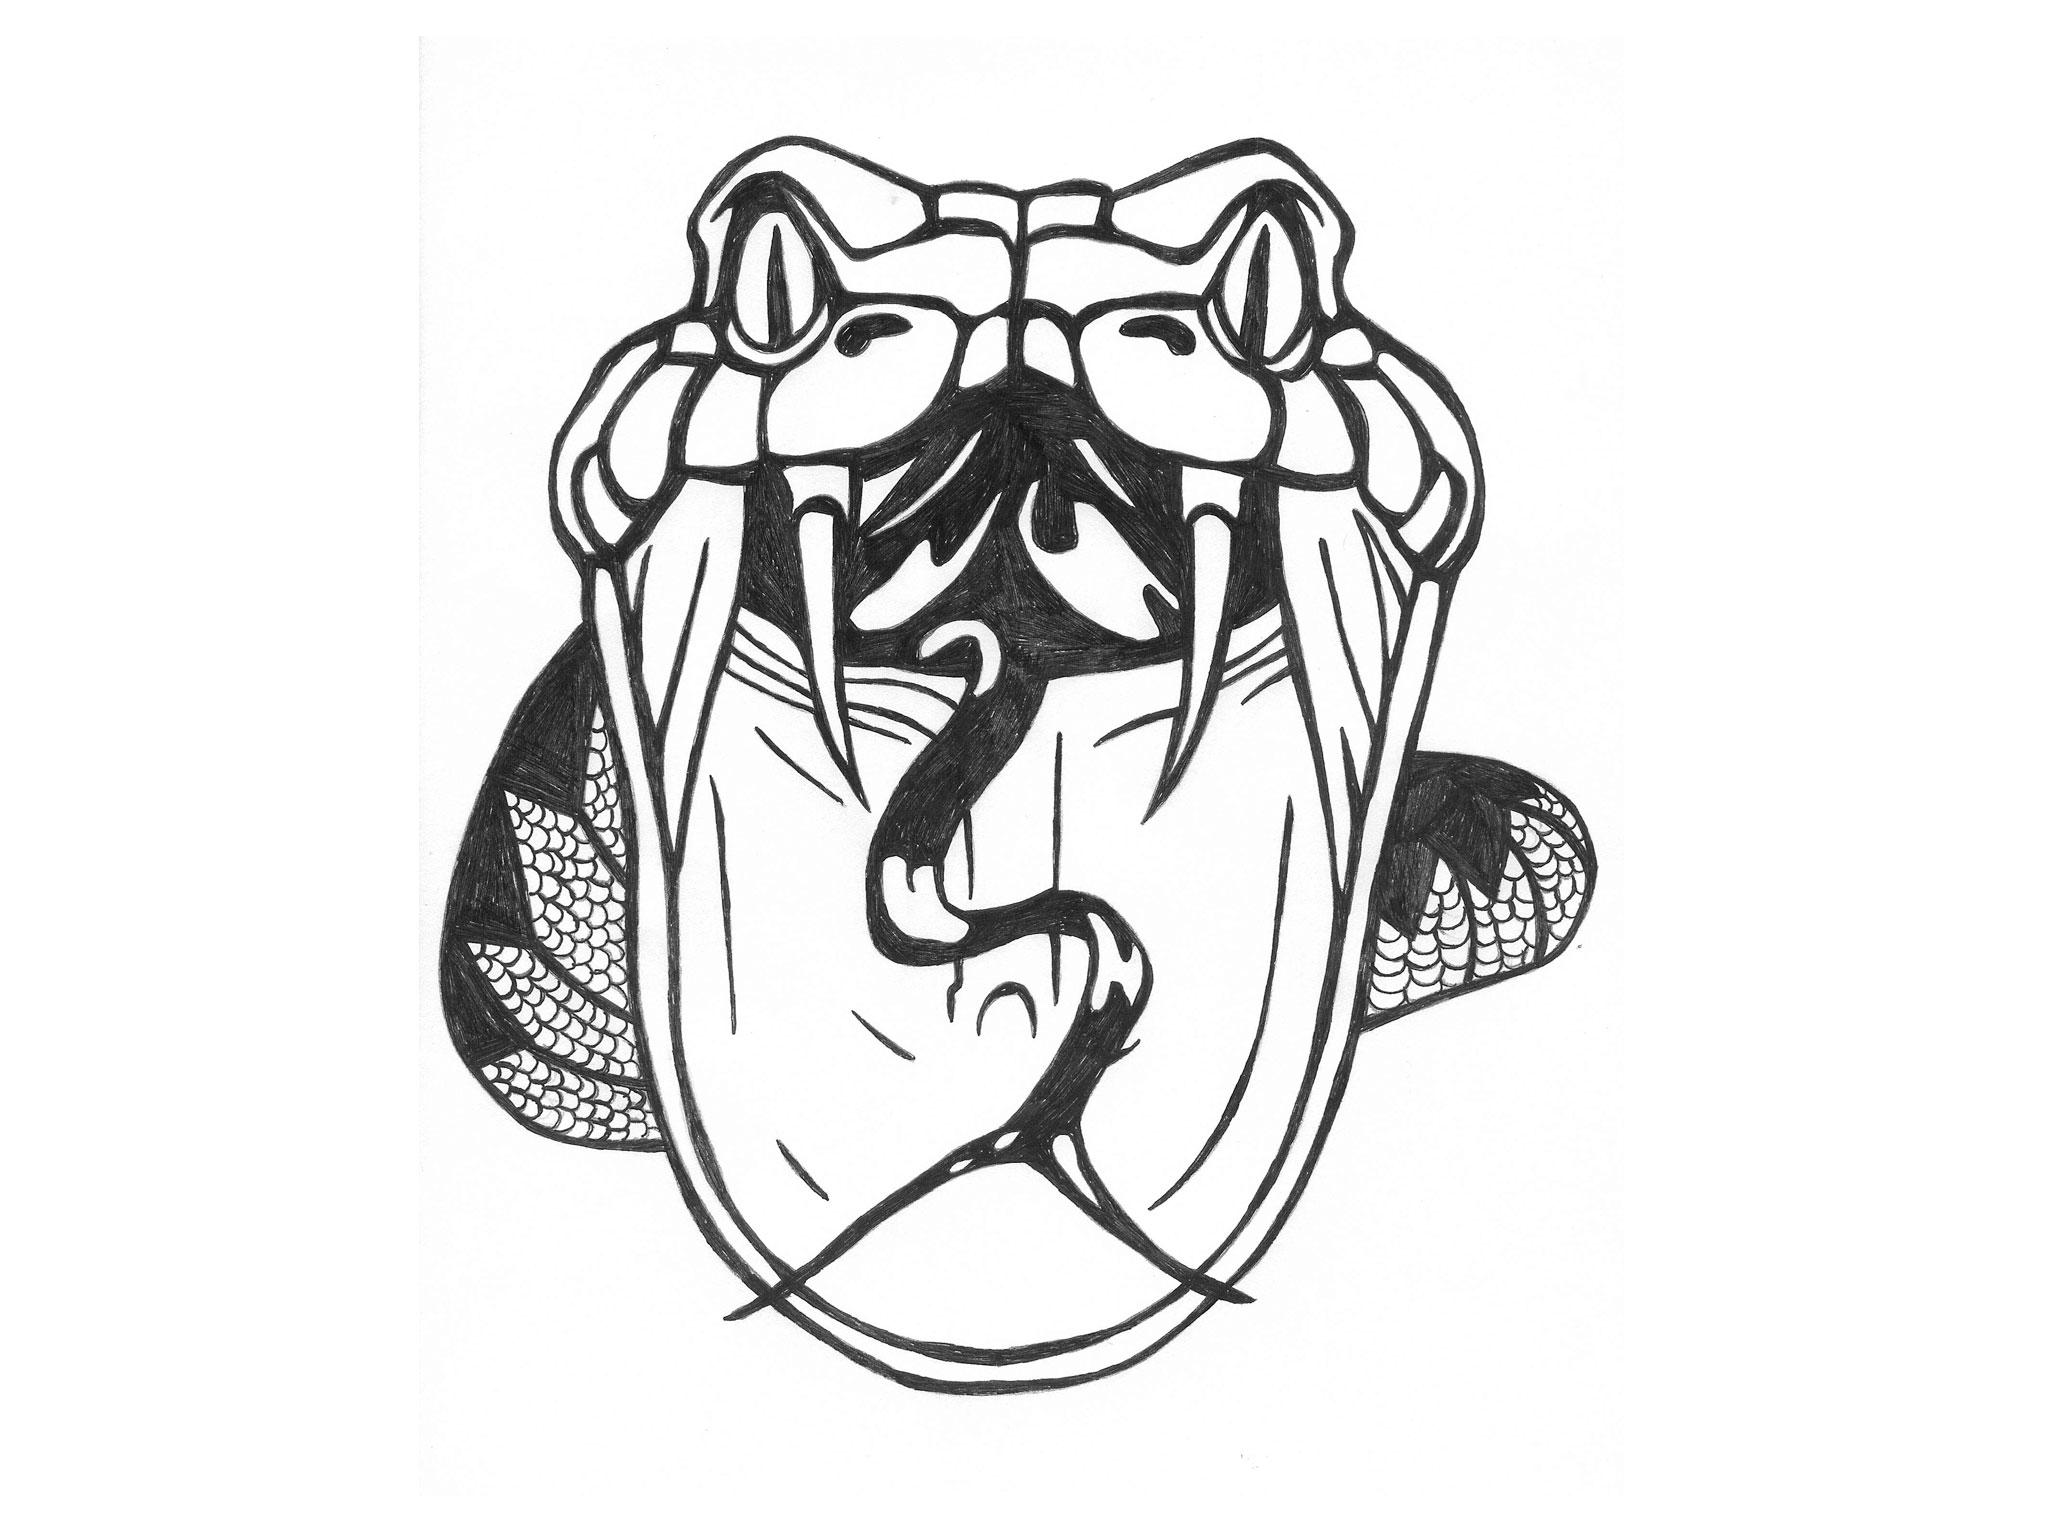 2048x1536 Collection Of Snake Knot Tattoo Design